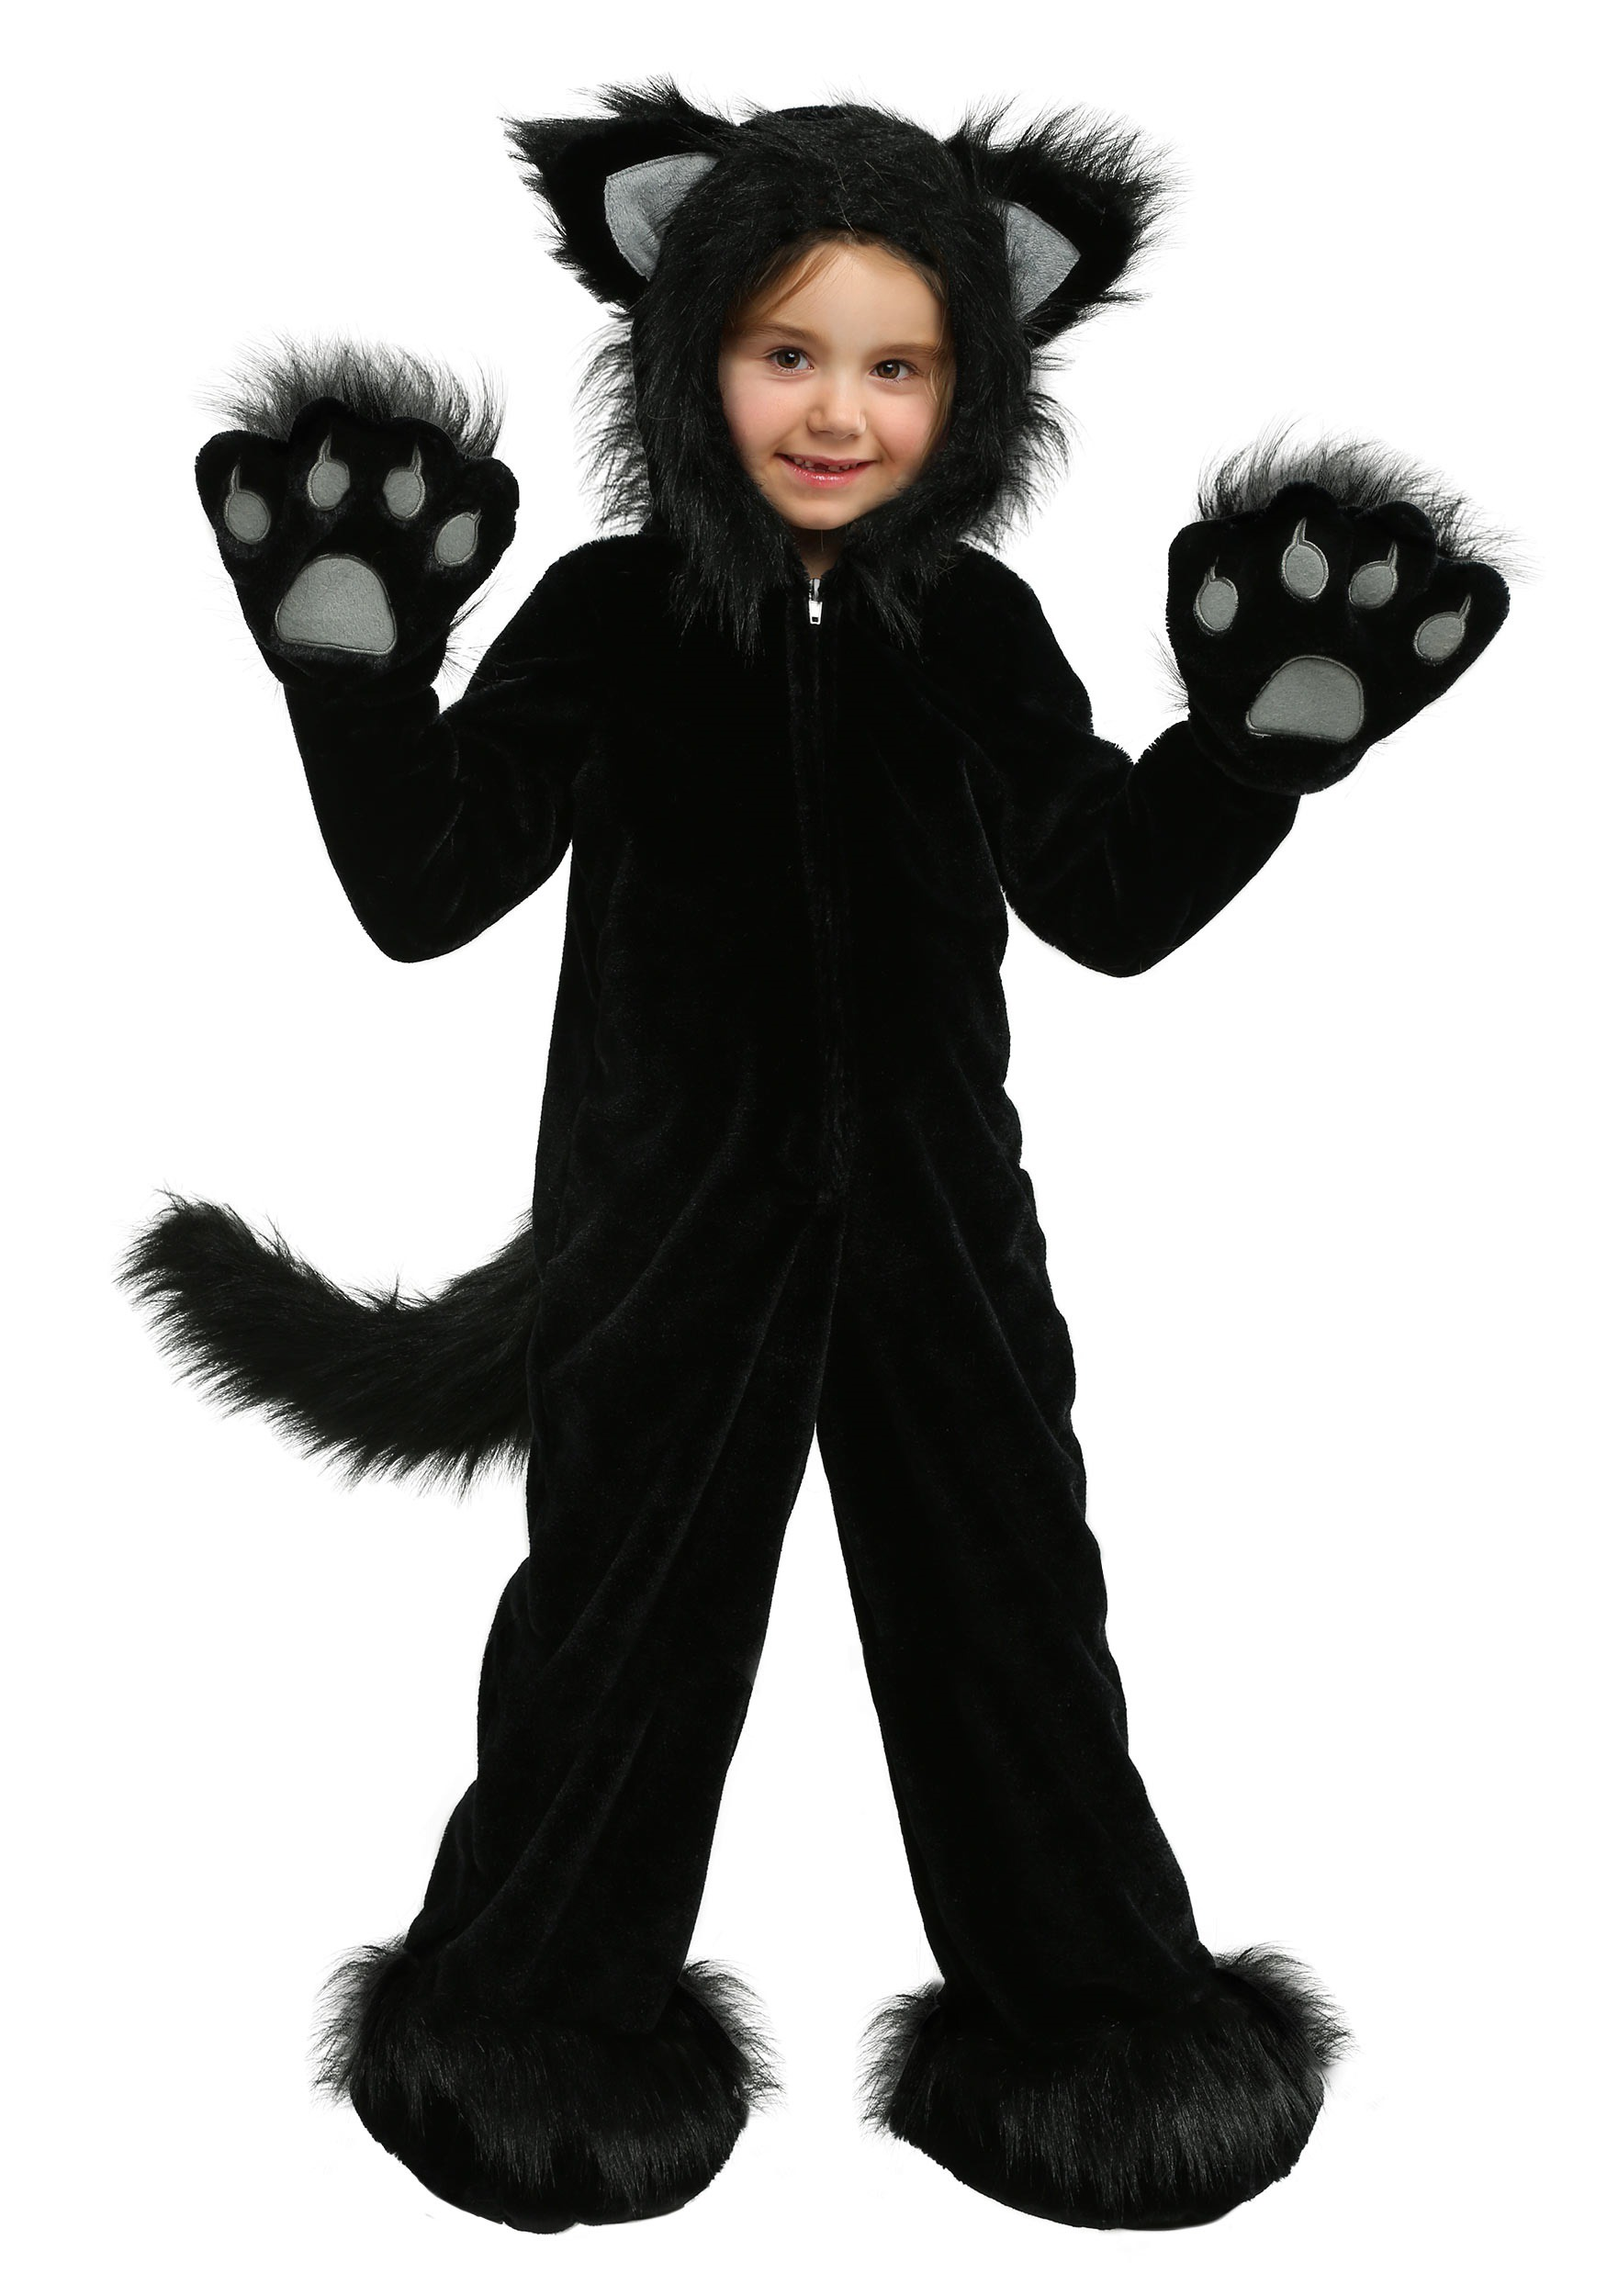 Black Cat Dress, Costume, Hand-made, Cuddly, Furry